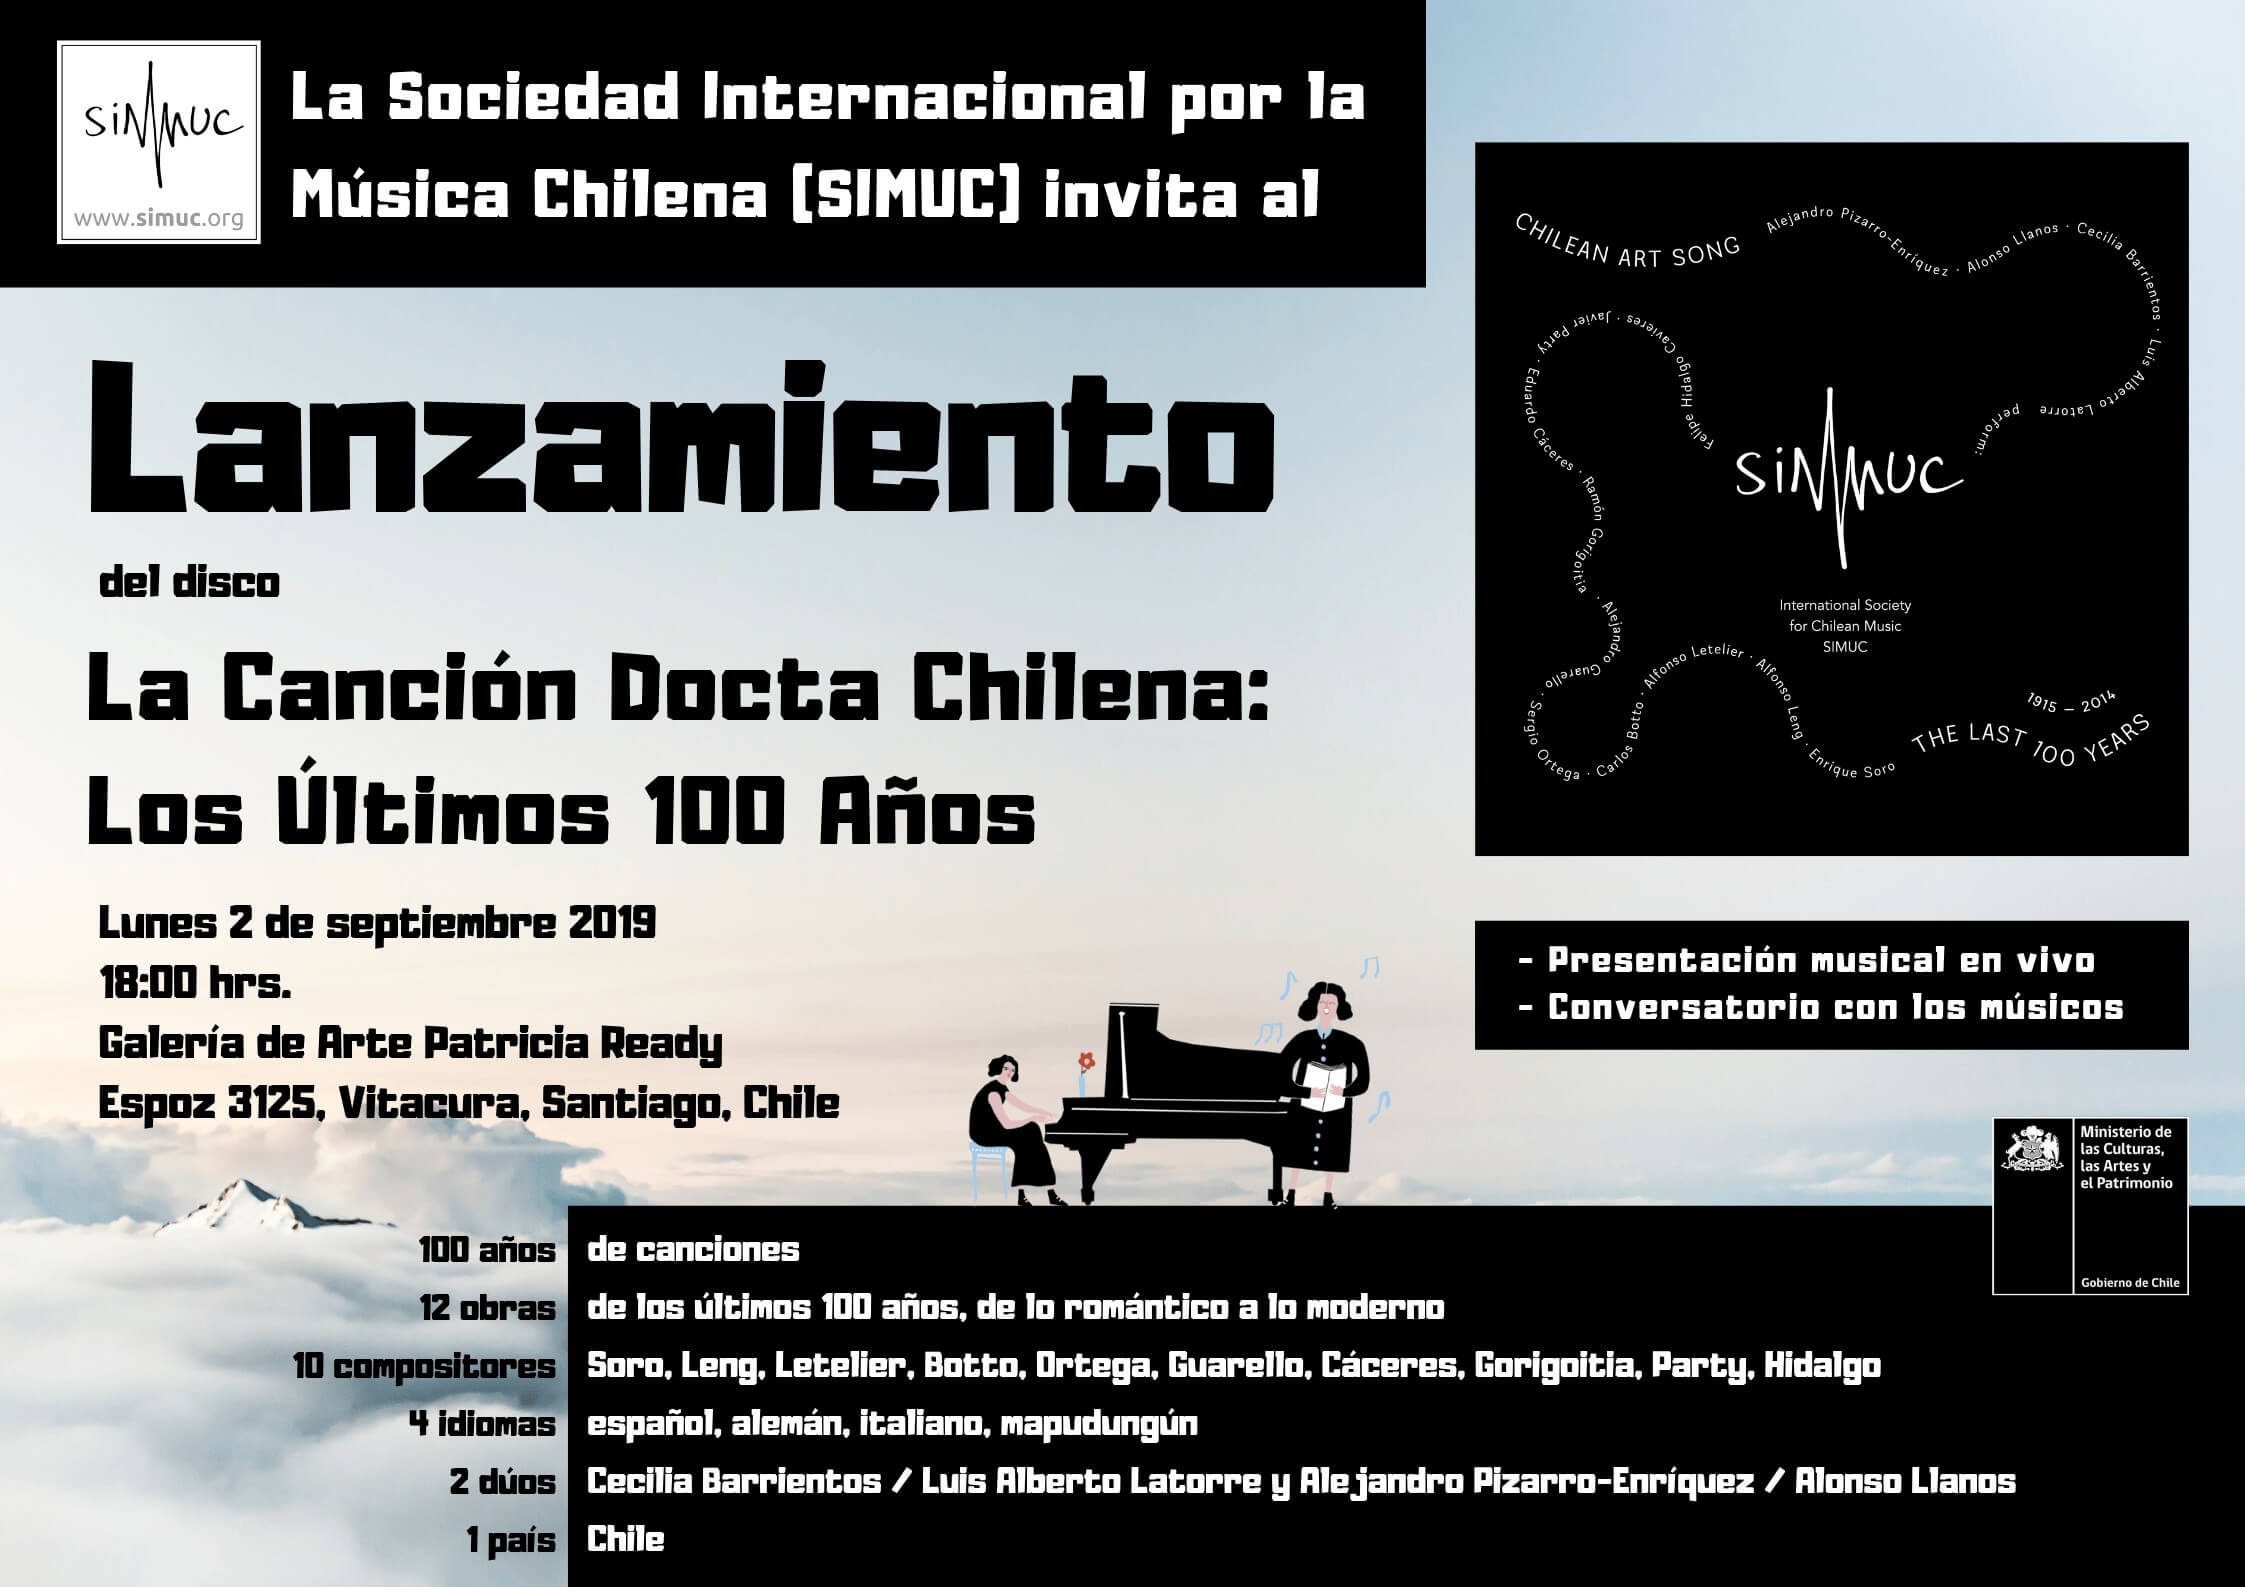 CD Launch in Chile. Chilean Art Song: The Last 100 Years